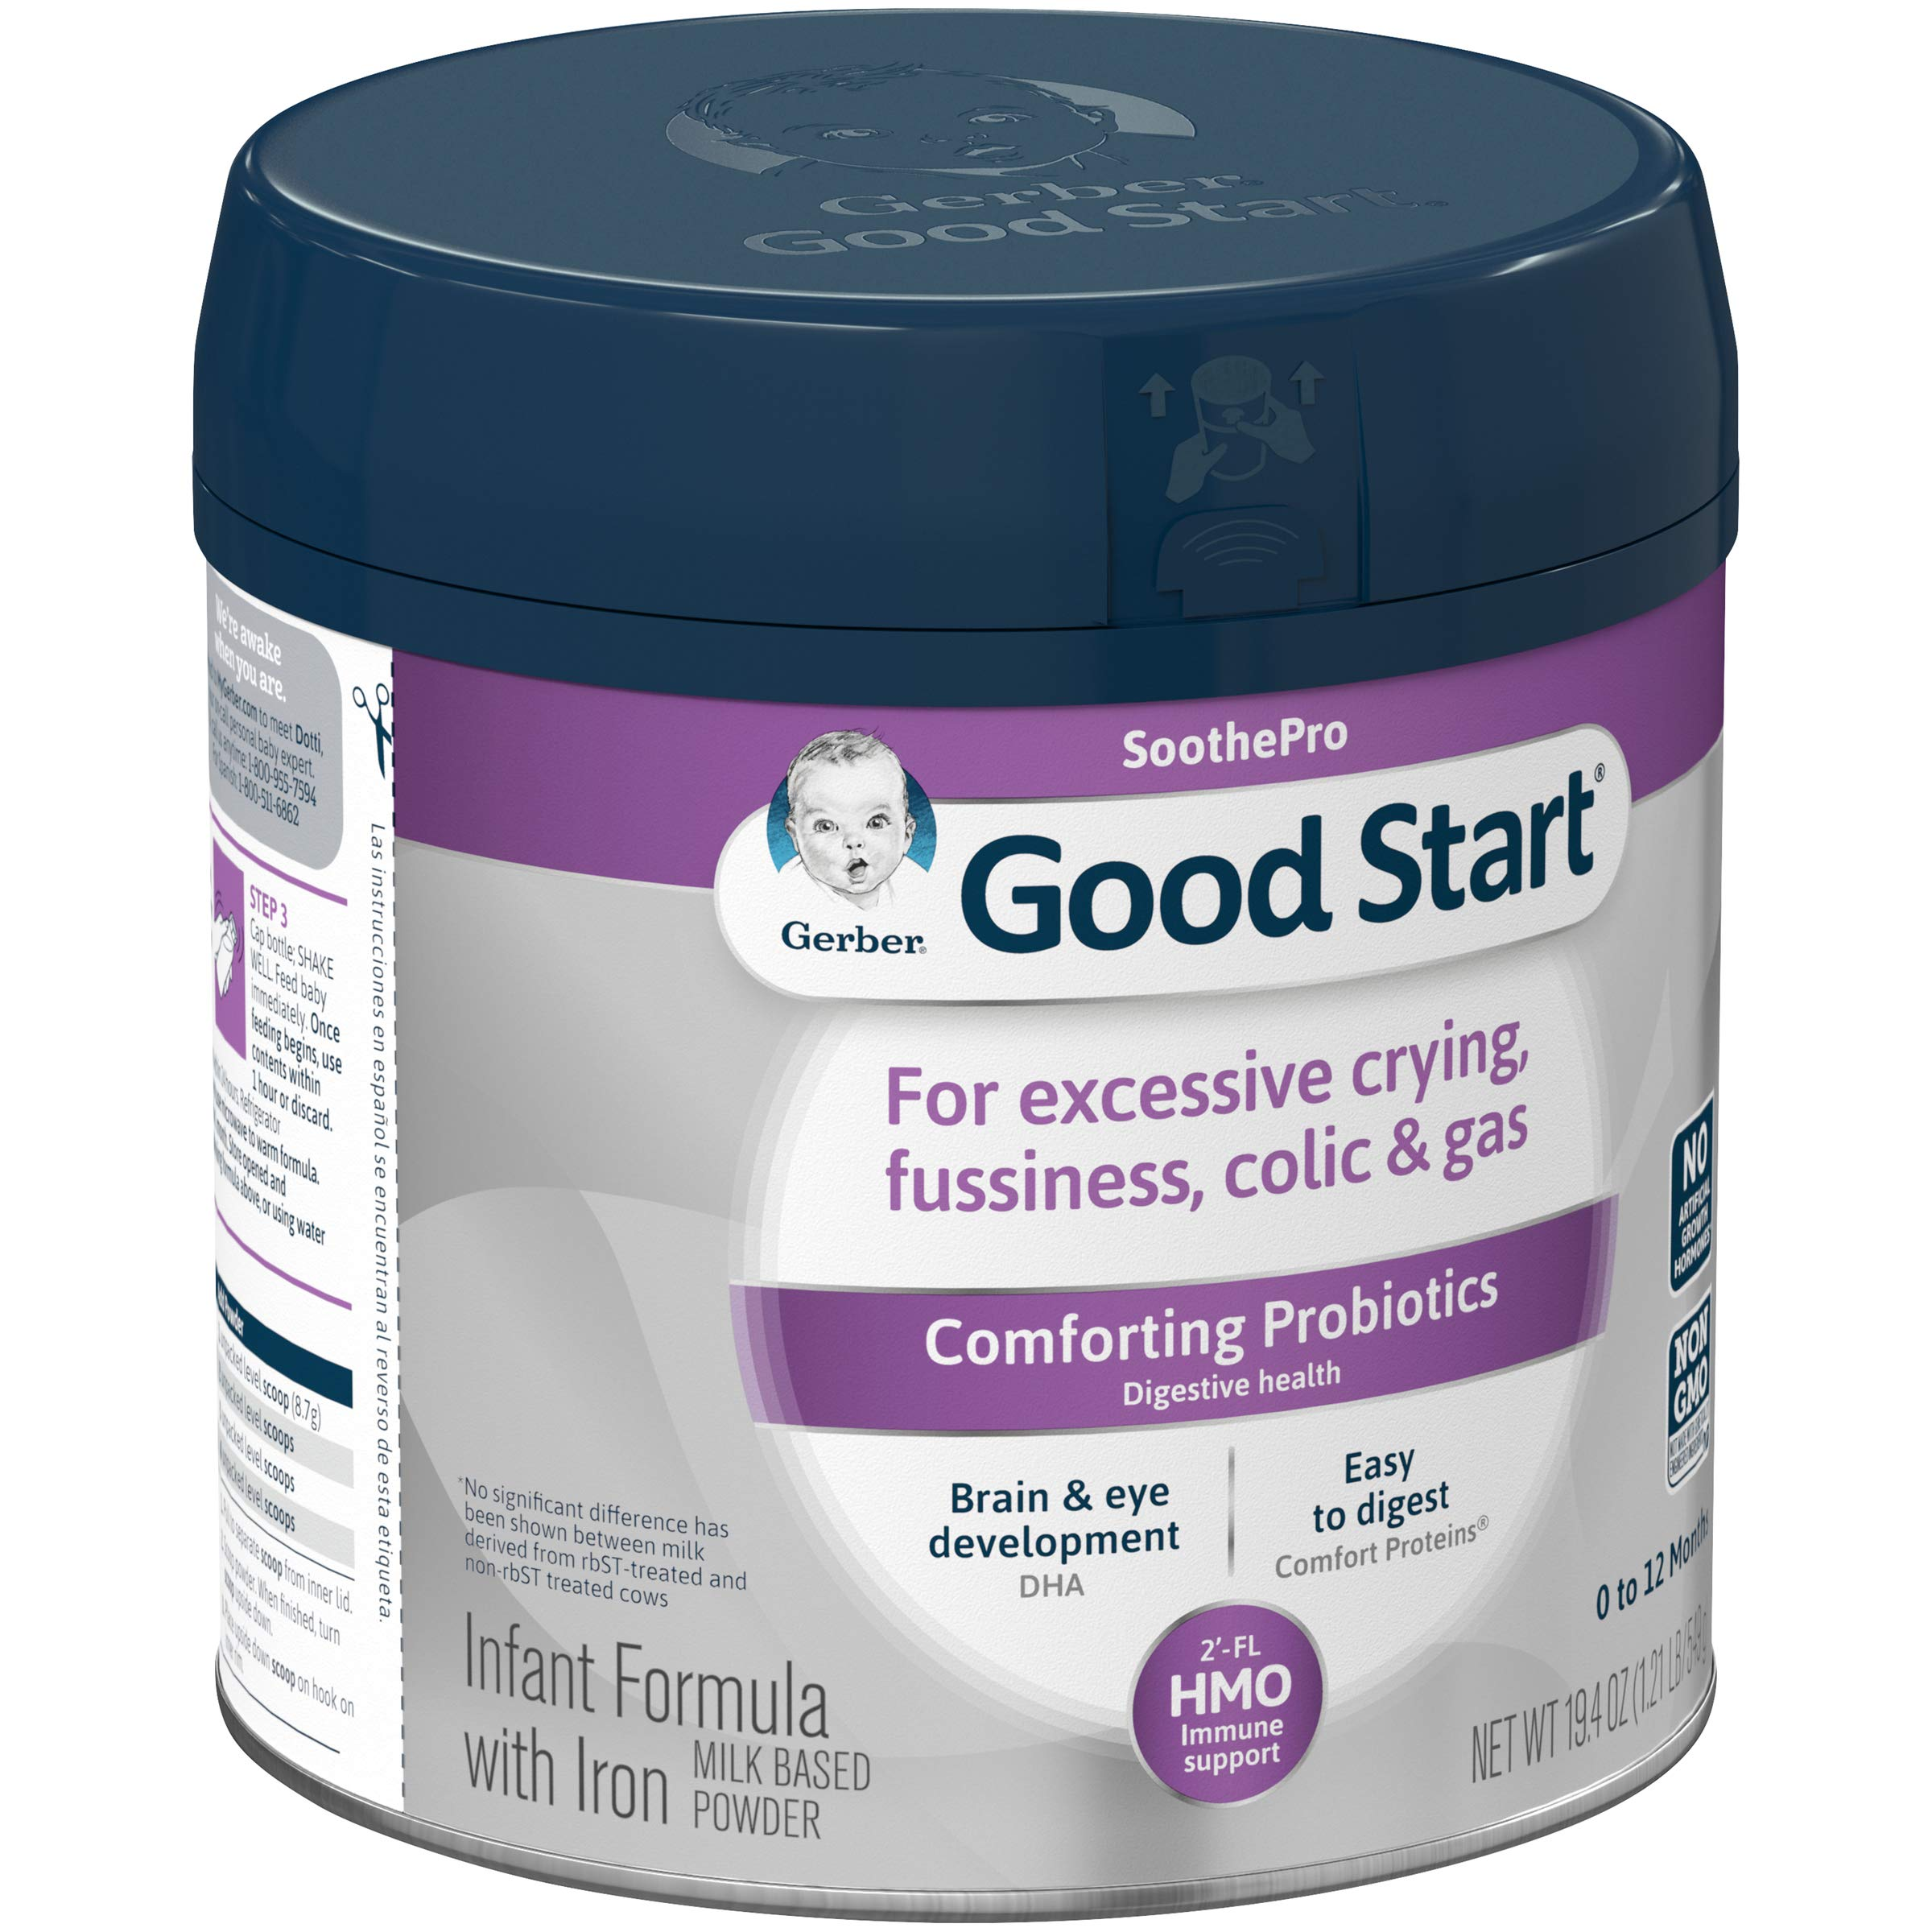 Gerber Good Start Infant Formula Soothe (HMO) Non-Gmo Powder Infant Formula, Stage 1, 19.4 Ounce, 6 Count by Good Start (Image #4)